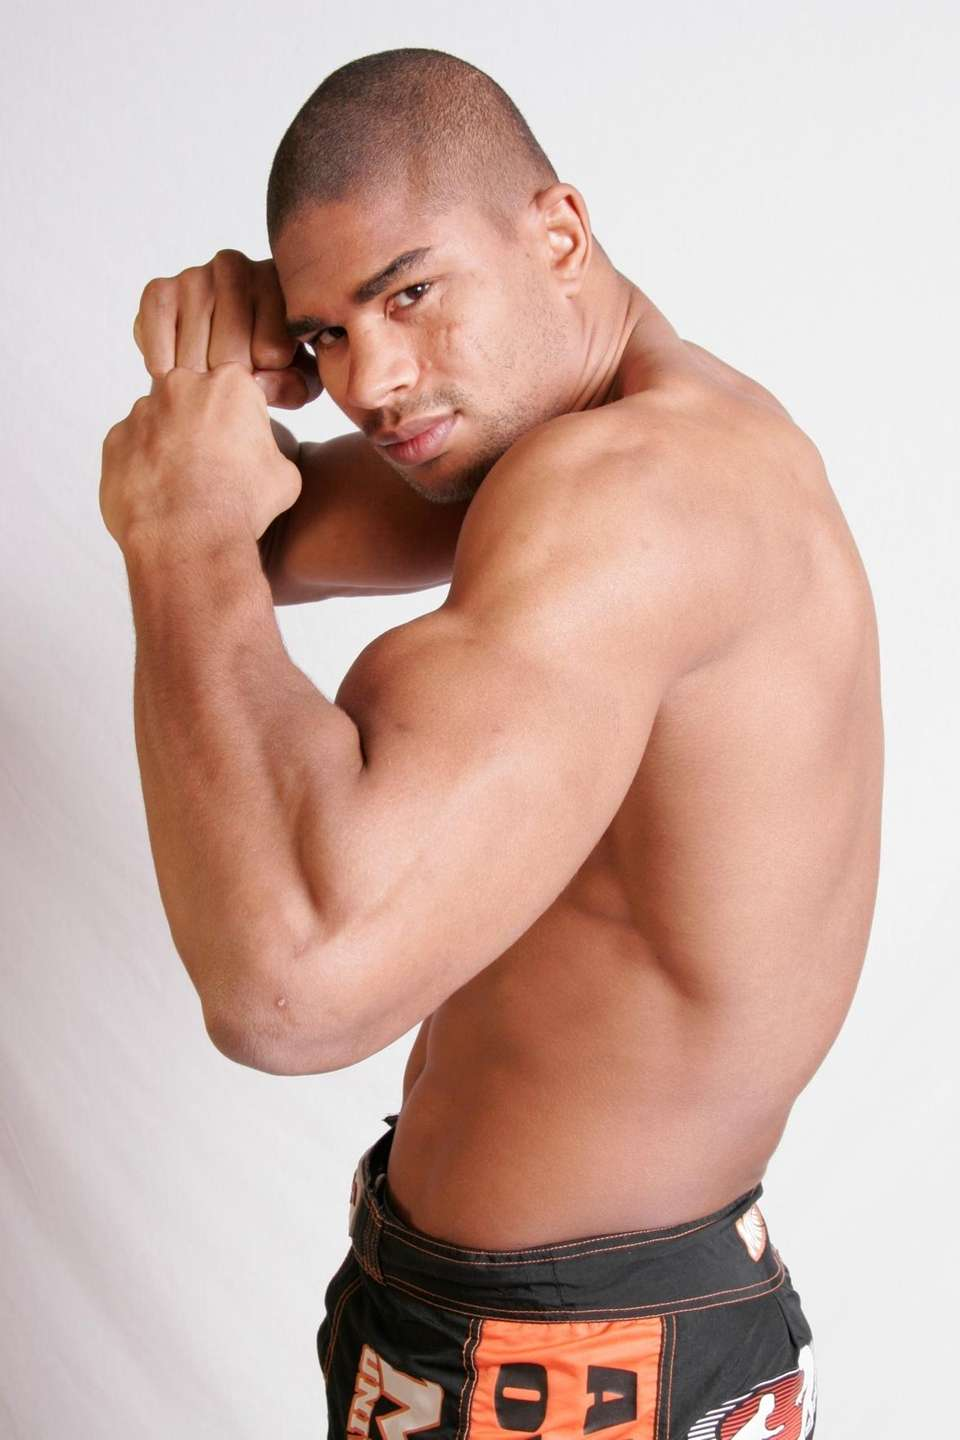 Alistair Overeem won the Strikeforce heavyweight title on